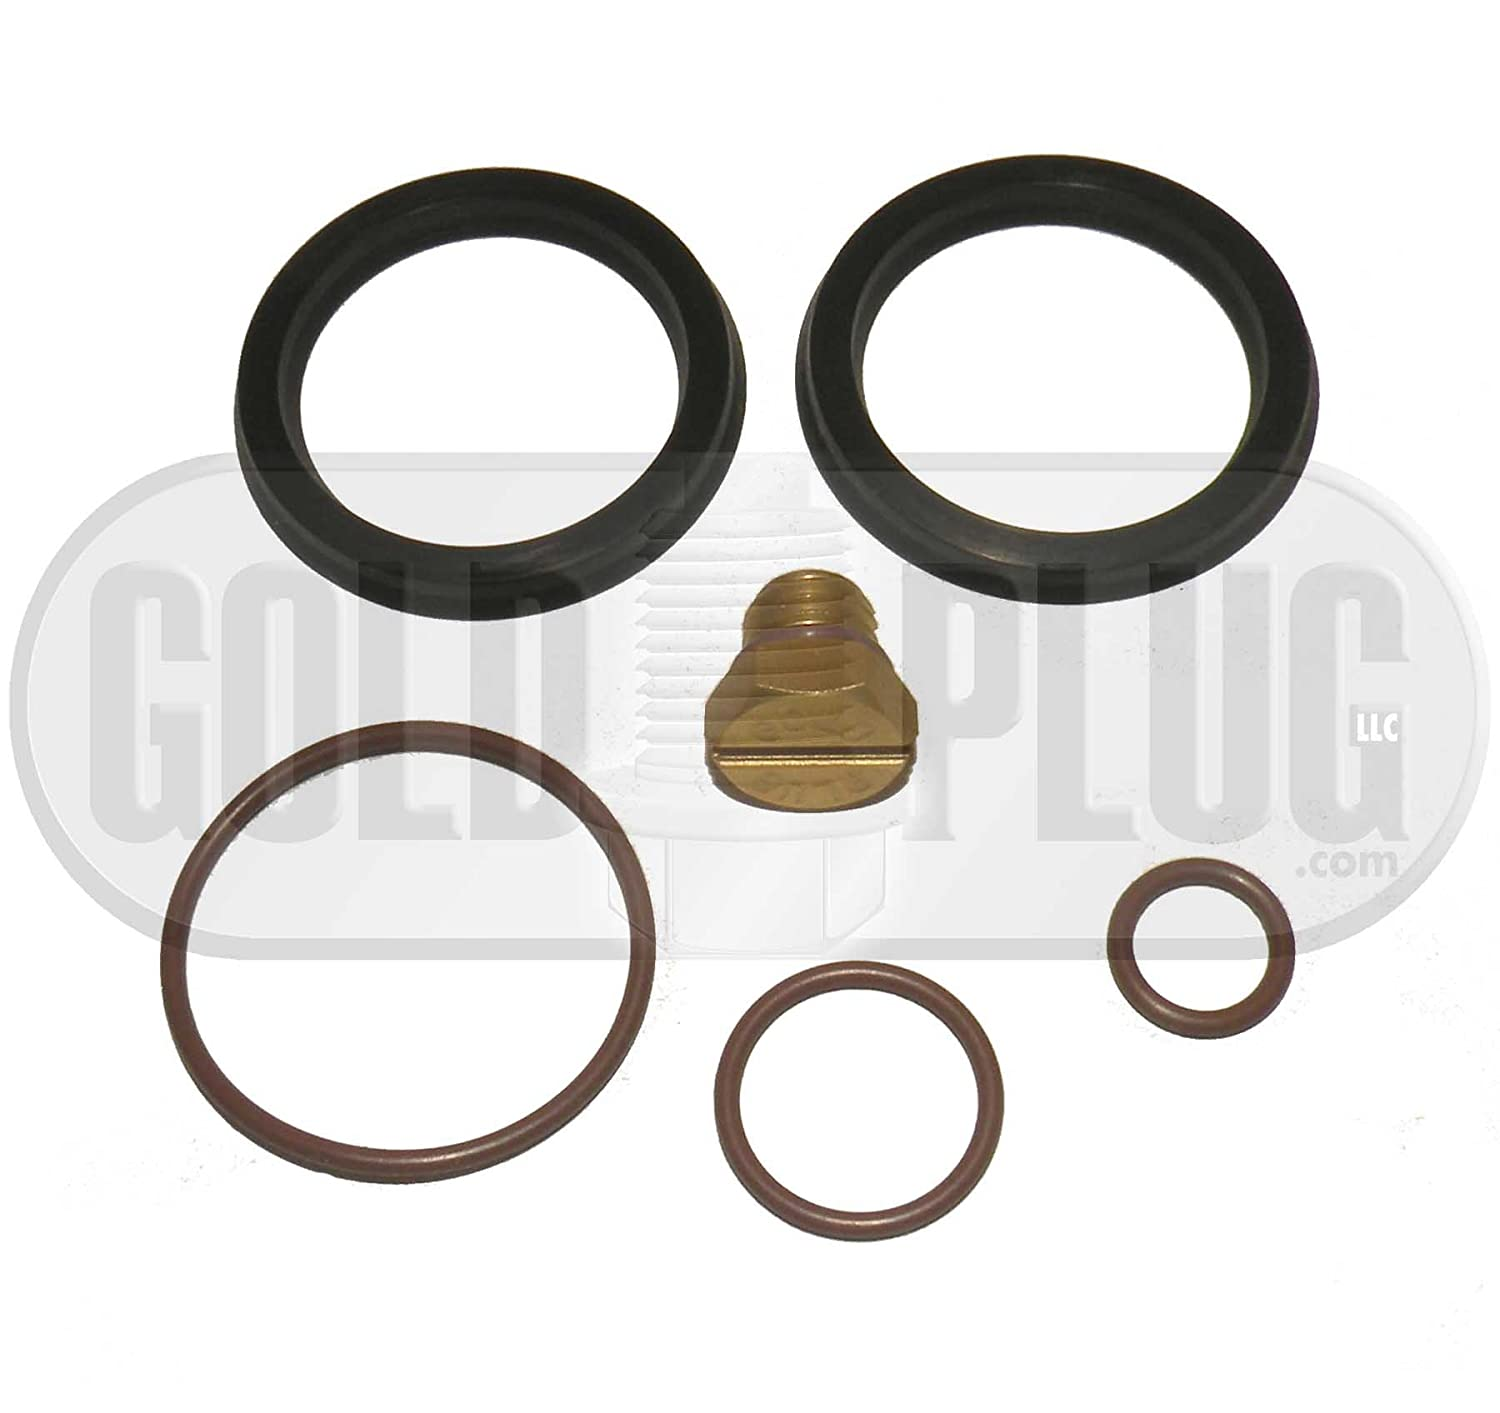 Amazon.com: Primer Fuel Filter Seal Rebuild Kit and Bleeder Screw for  2001-2010 GM Duramax Fuel Filter Housing: Automotive